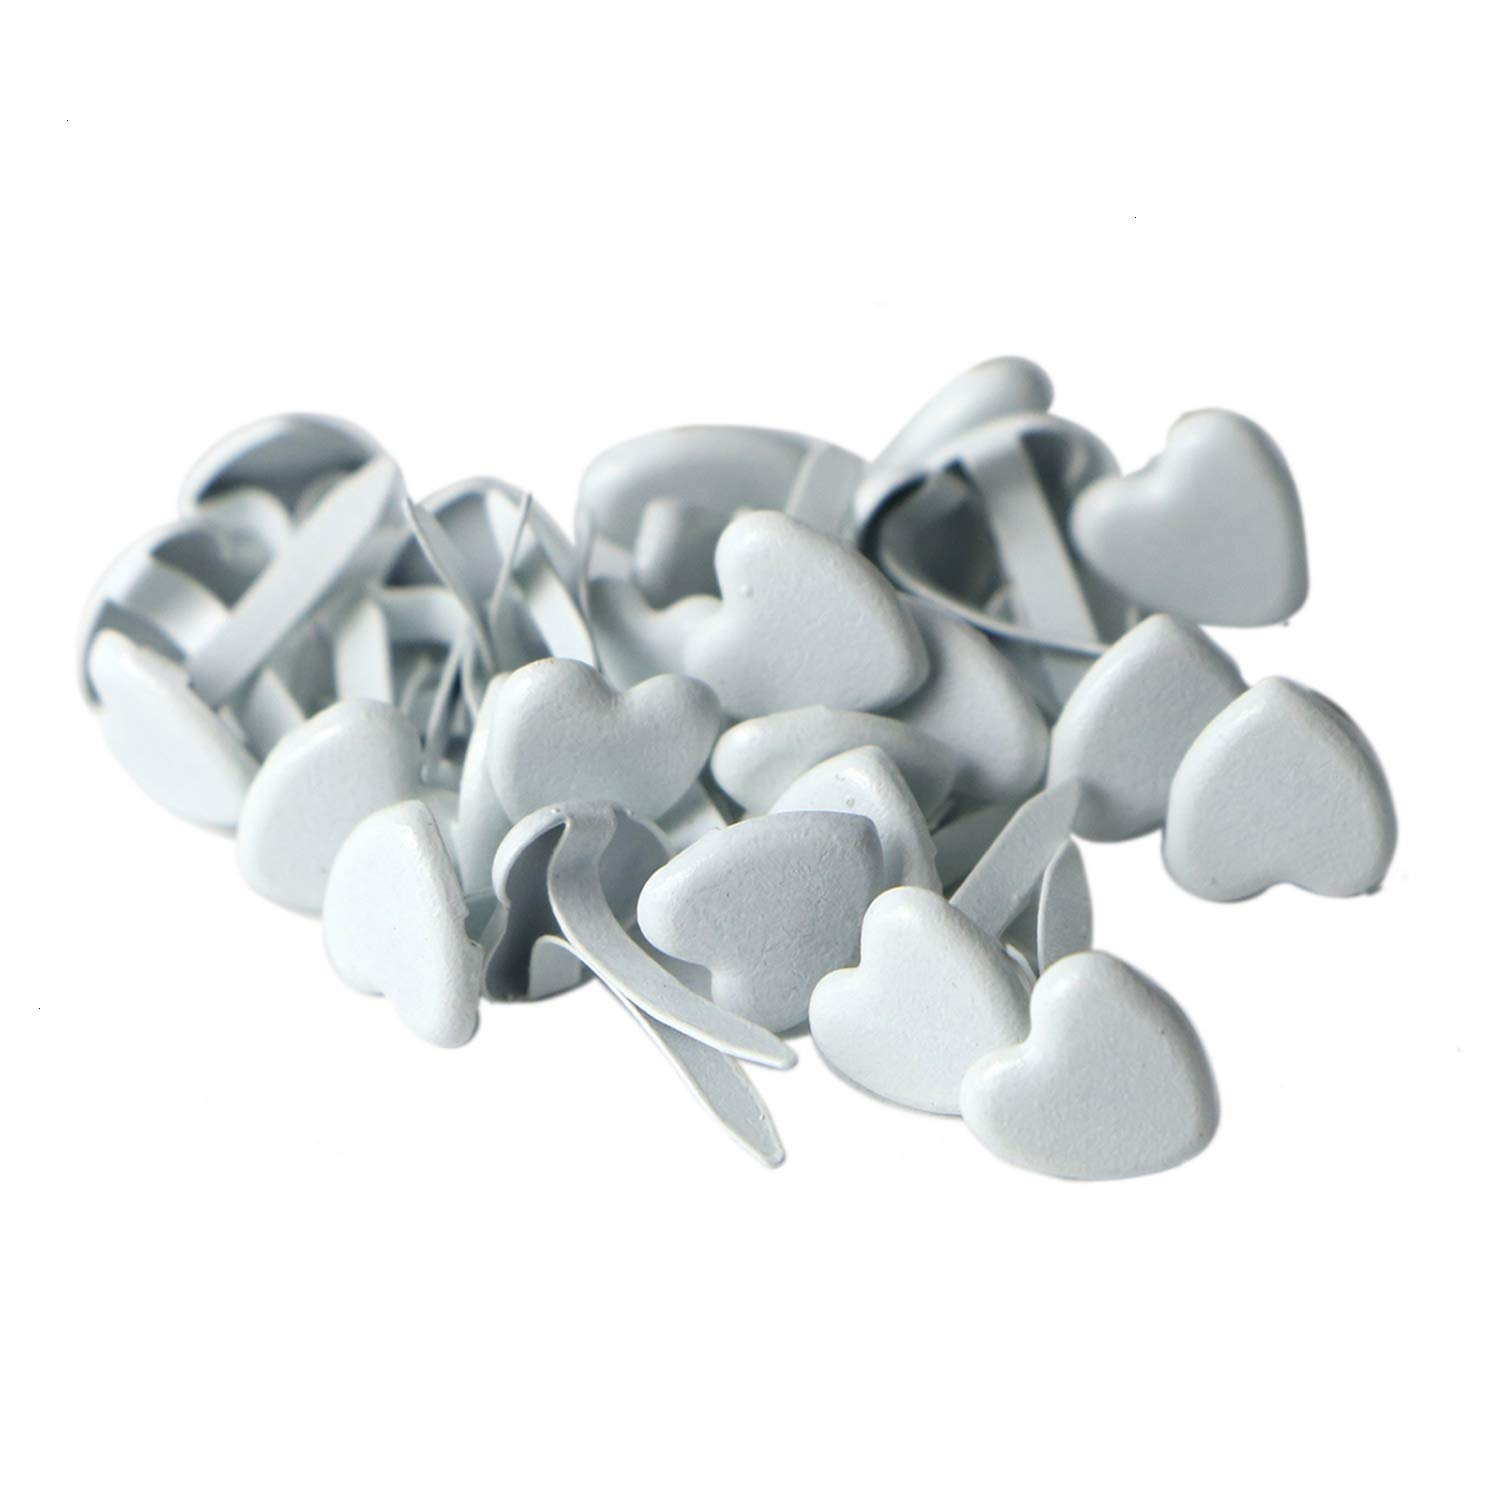 Monrocco 100pcs Metal Paper Fasteners White Hearts Metal Brad Craft Scrapbooking Card 9x8mm.